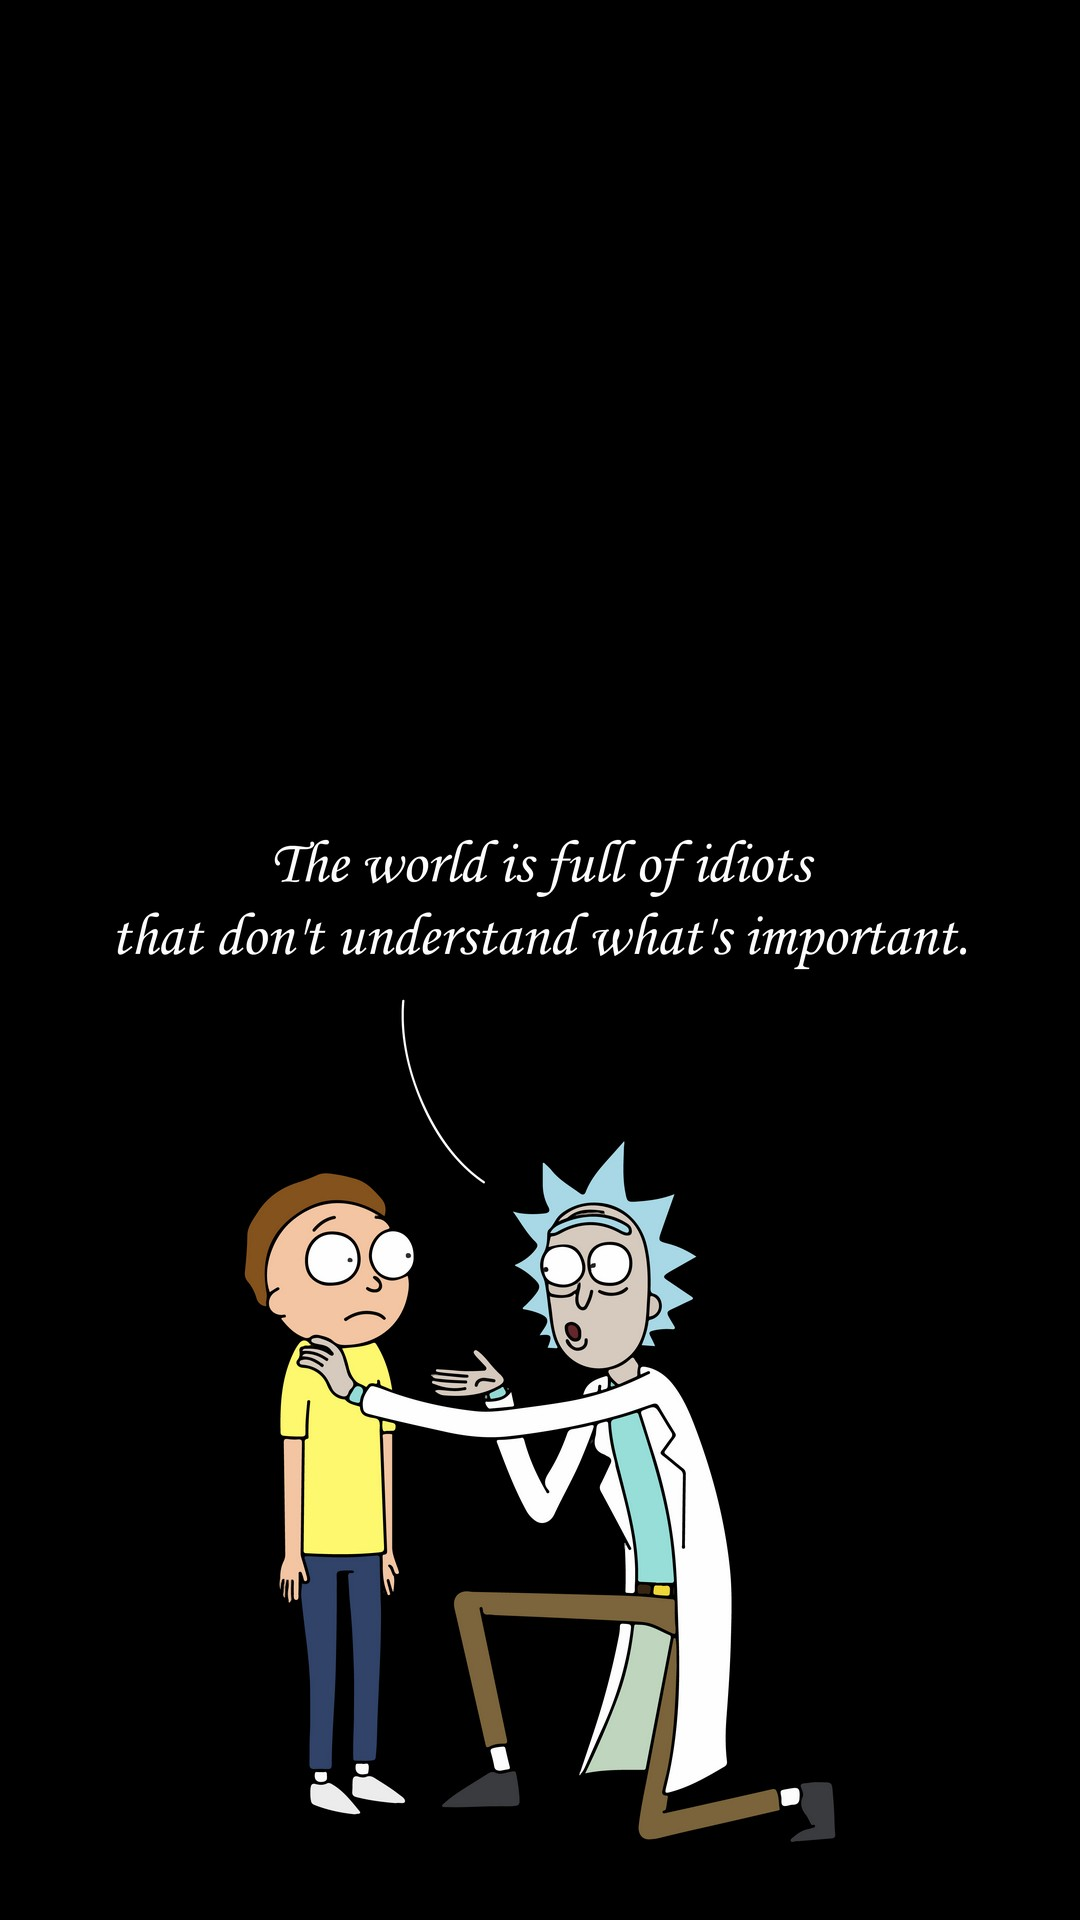 Quotes Wallpaper Rick And Morty Iphone 2020 3d Iphone Wallpaper